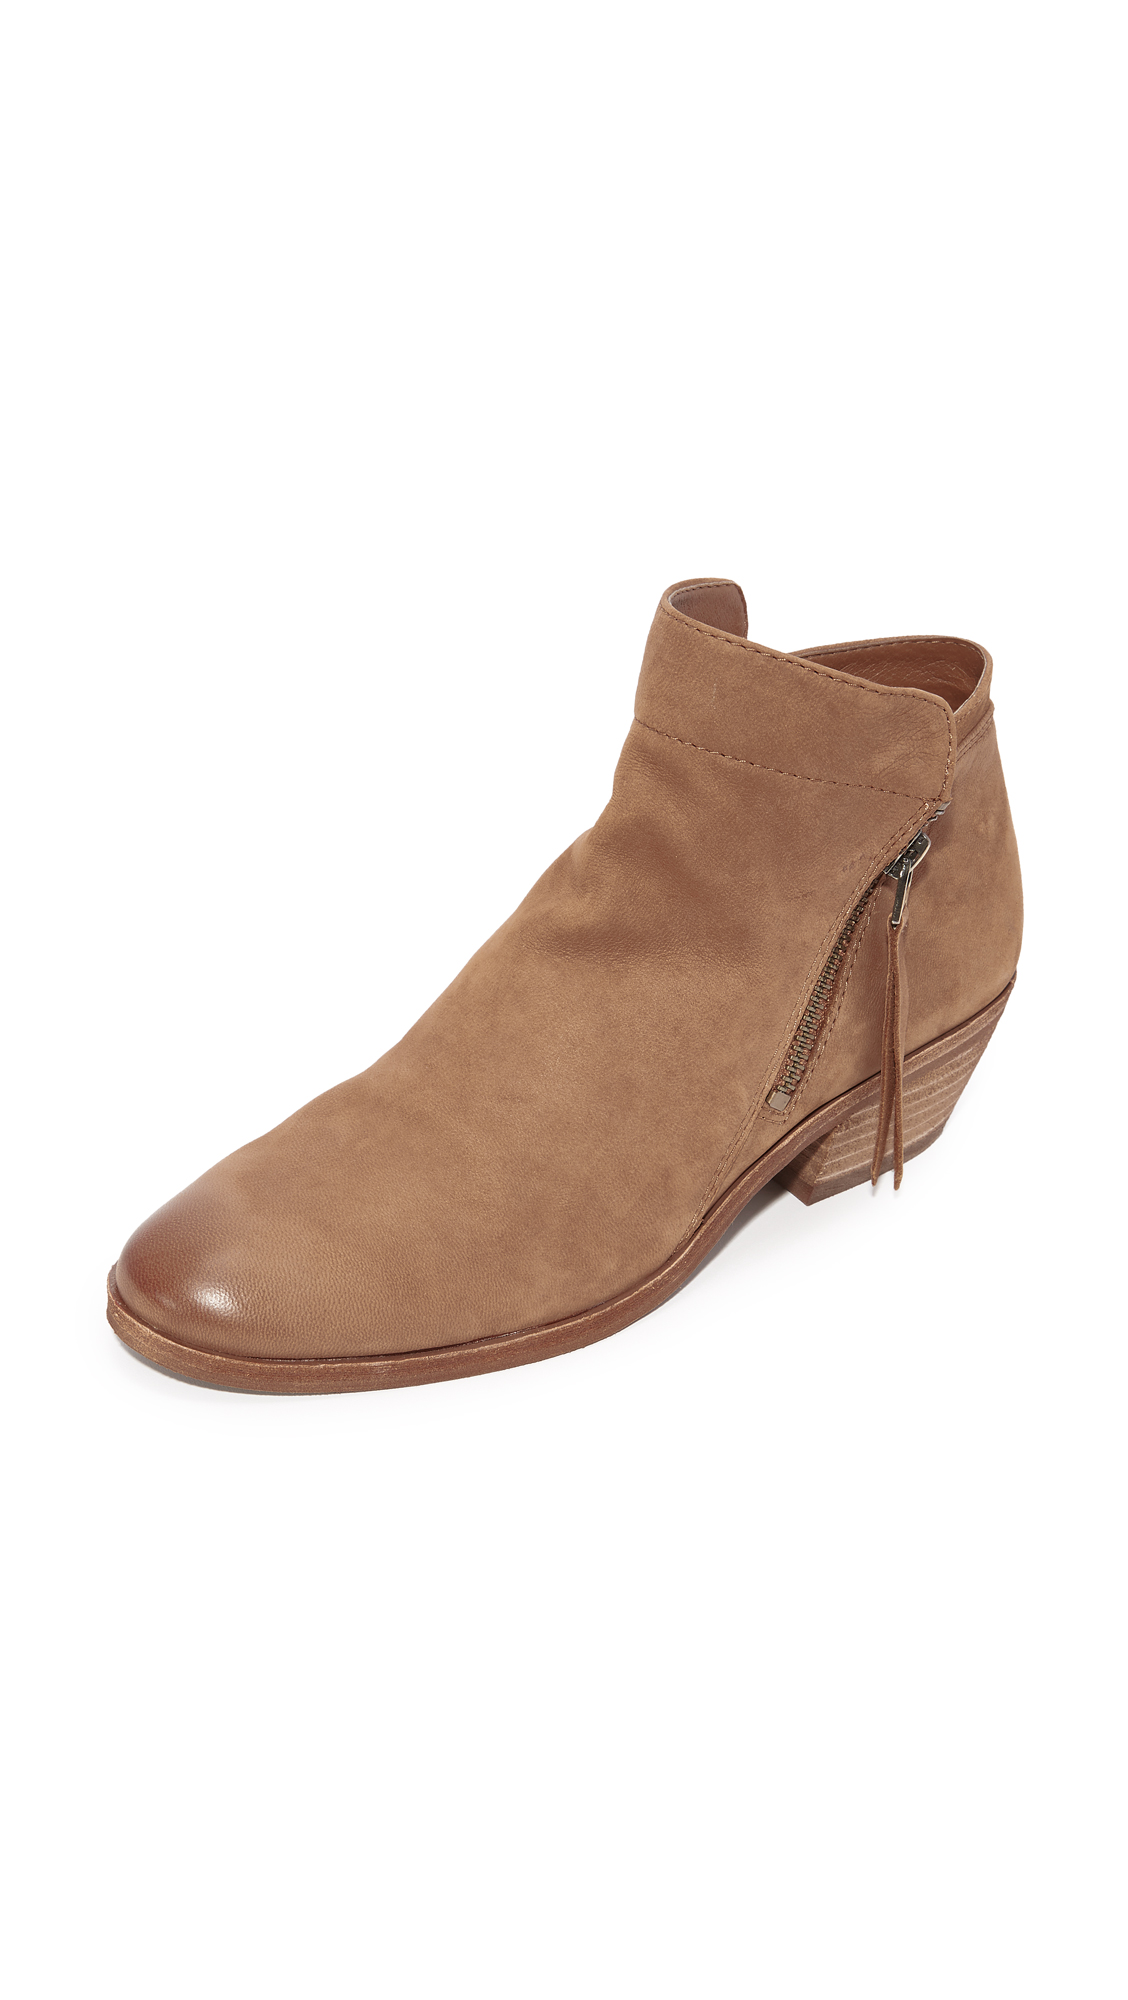 Sam Edelman Packer Booties - Deep Saddle